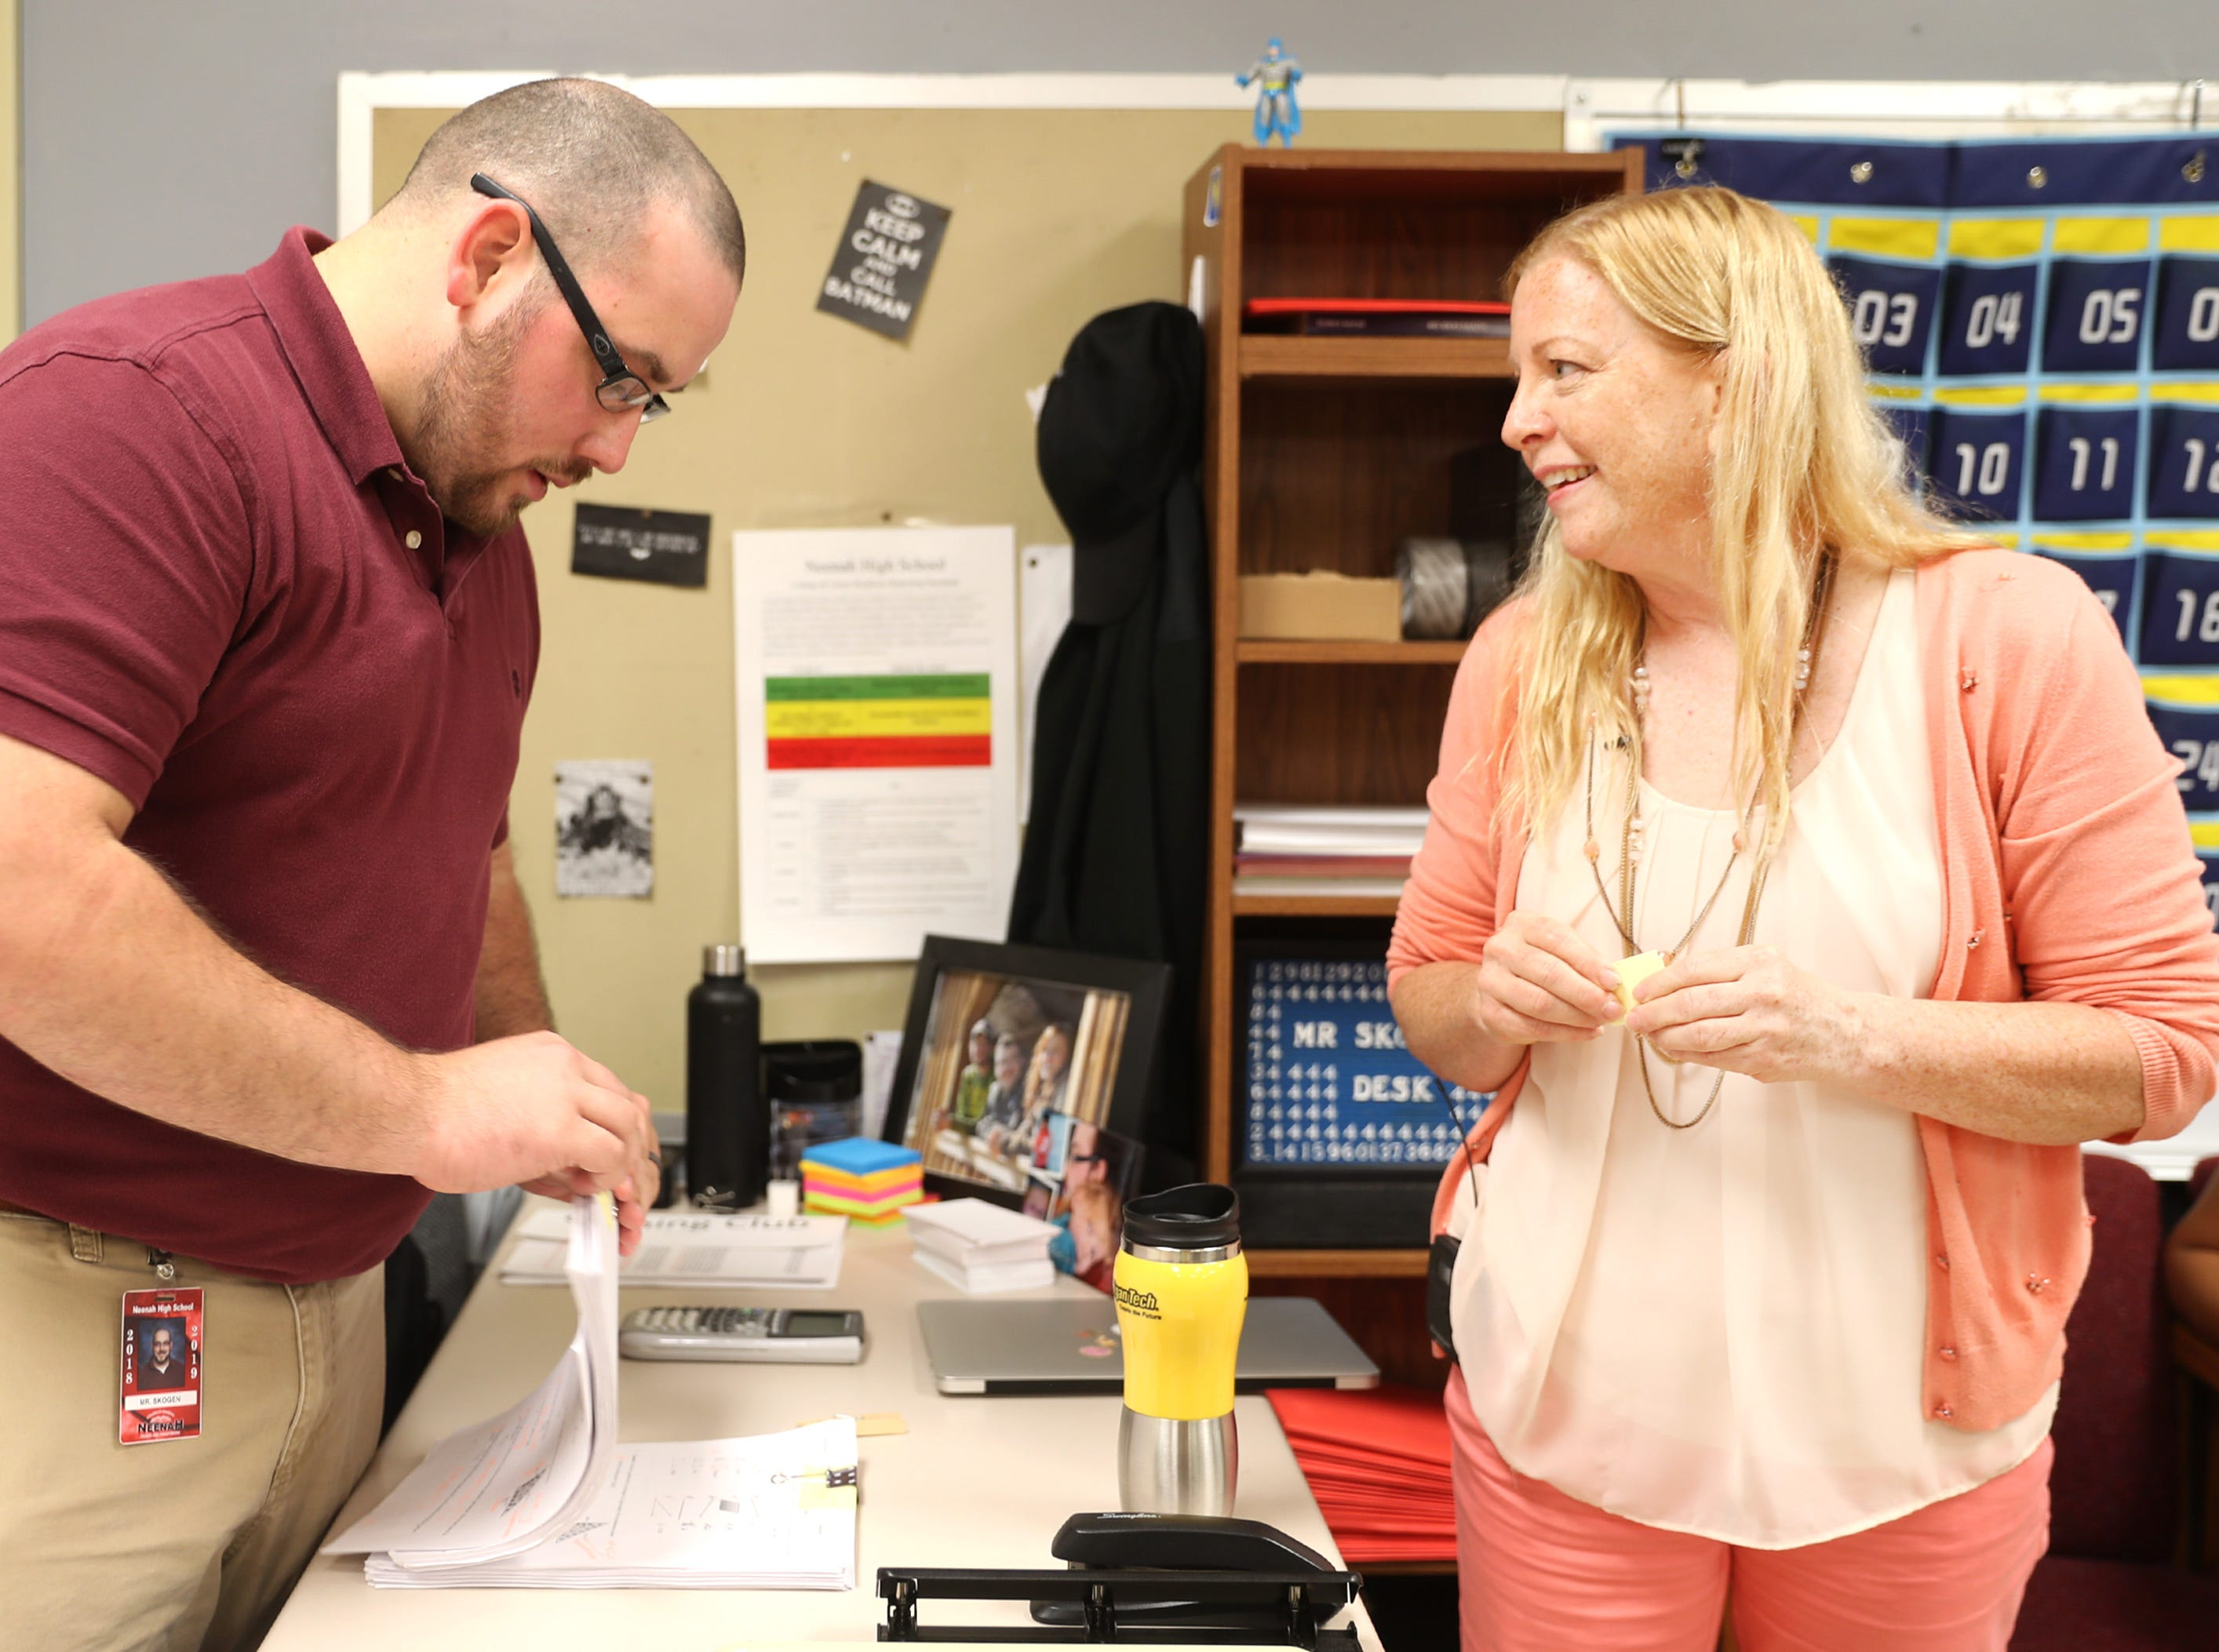 Neenah, – Chris Skogen, a math teacher at Neenah High School, prepares a stack of tests with Maripat Franke, a special education teacher currently enrolled in the Residency In Teacher Education 2.0 program.